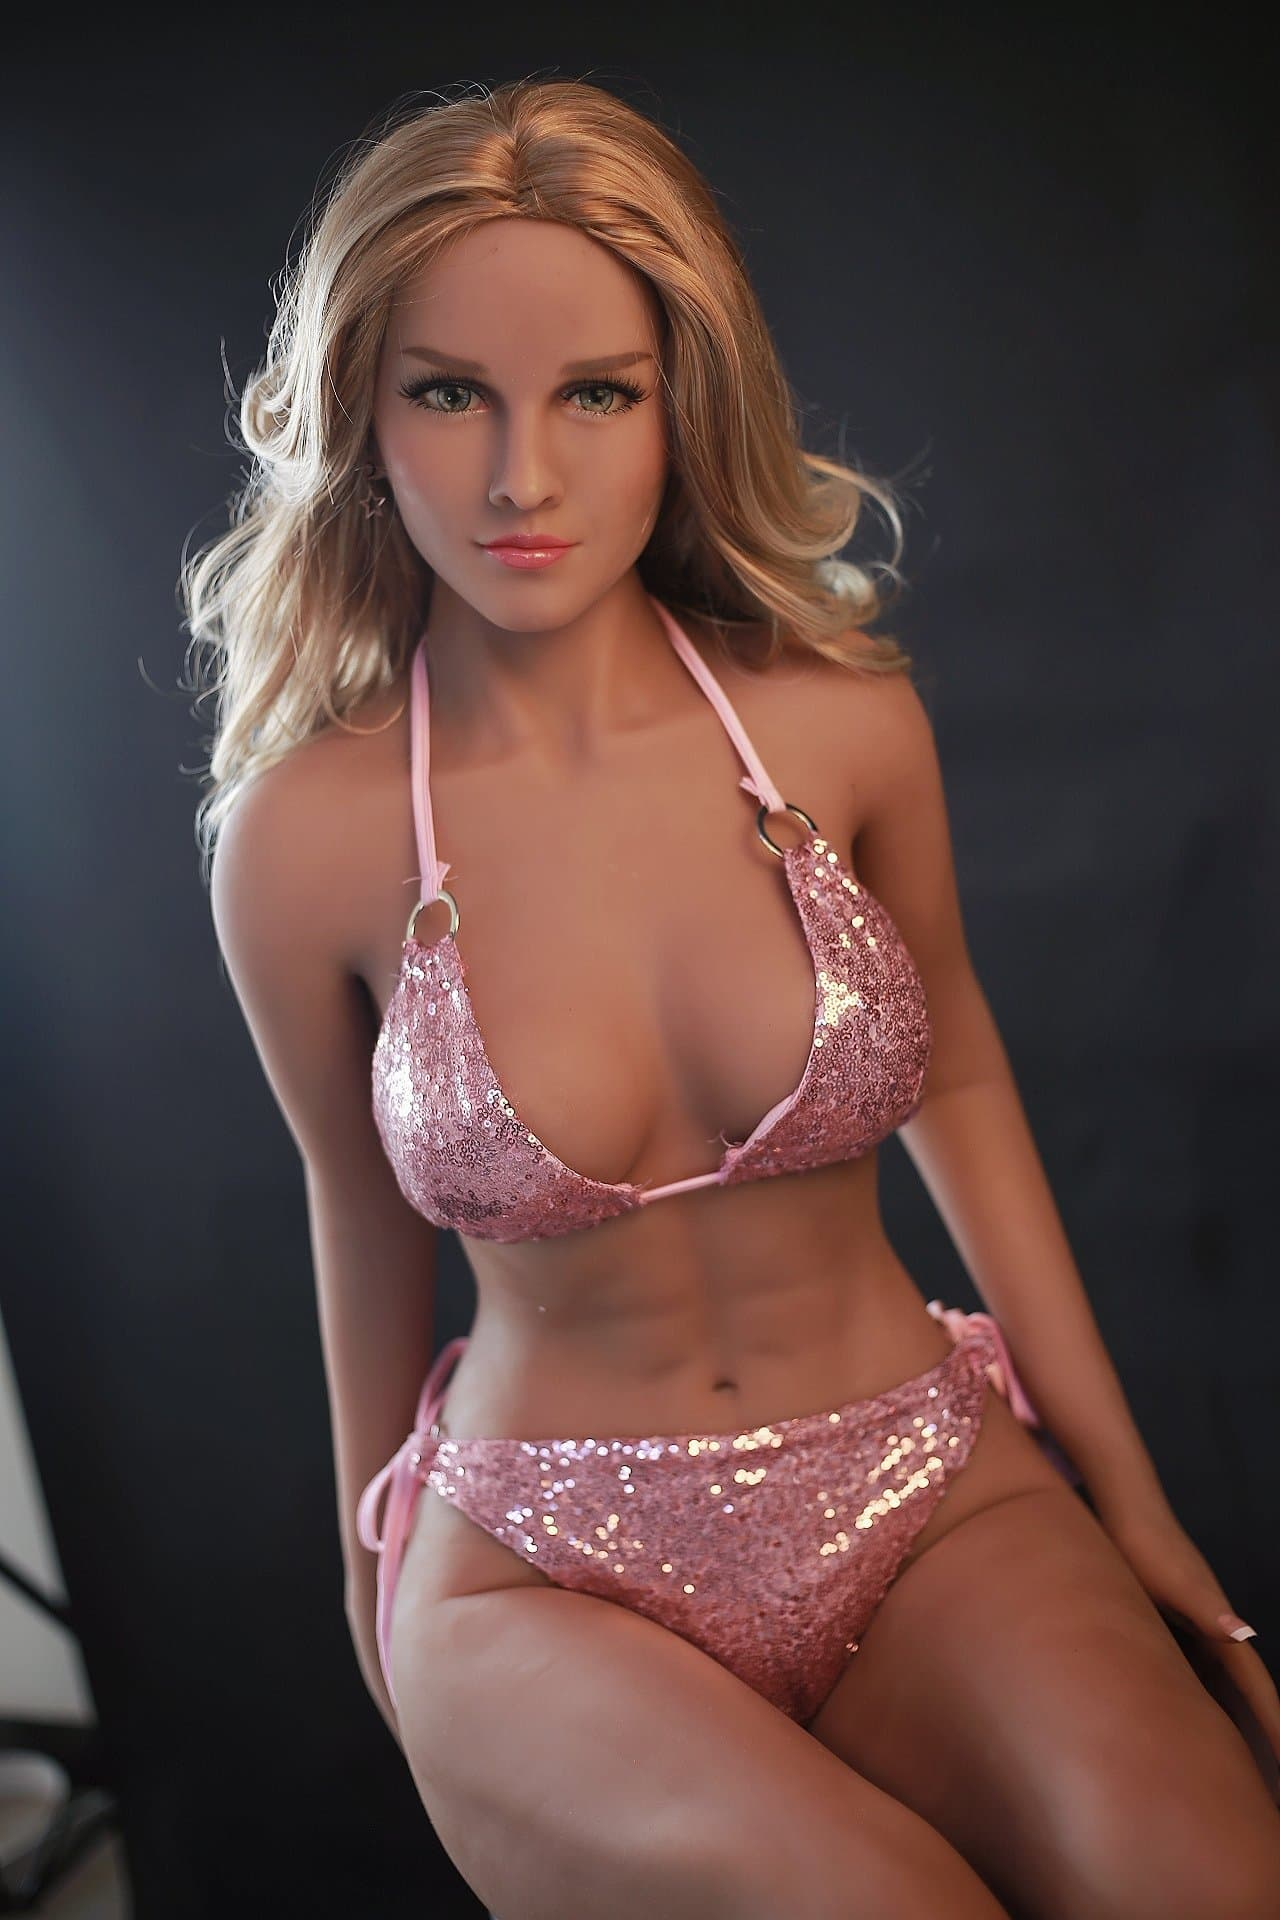 gavin 150cm blonde jy medium tits athletic tan skin tpe sex doll(3)